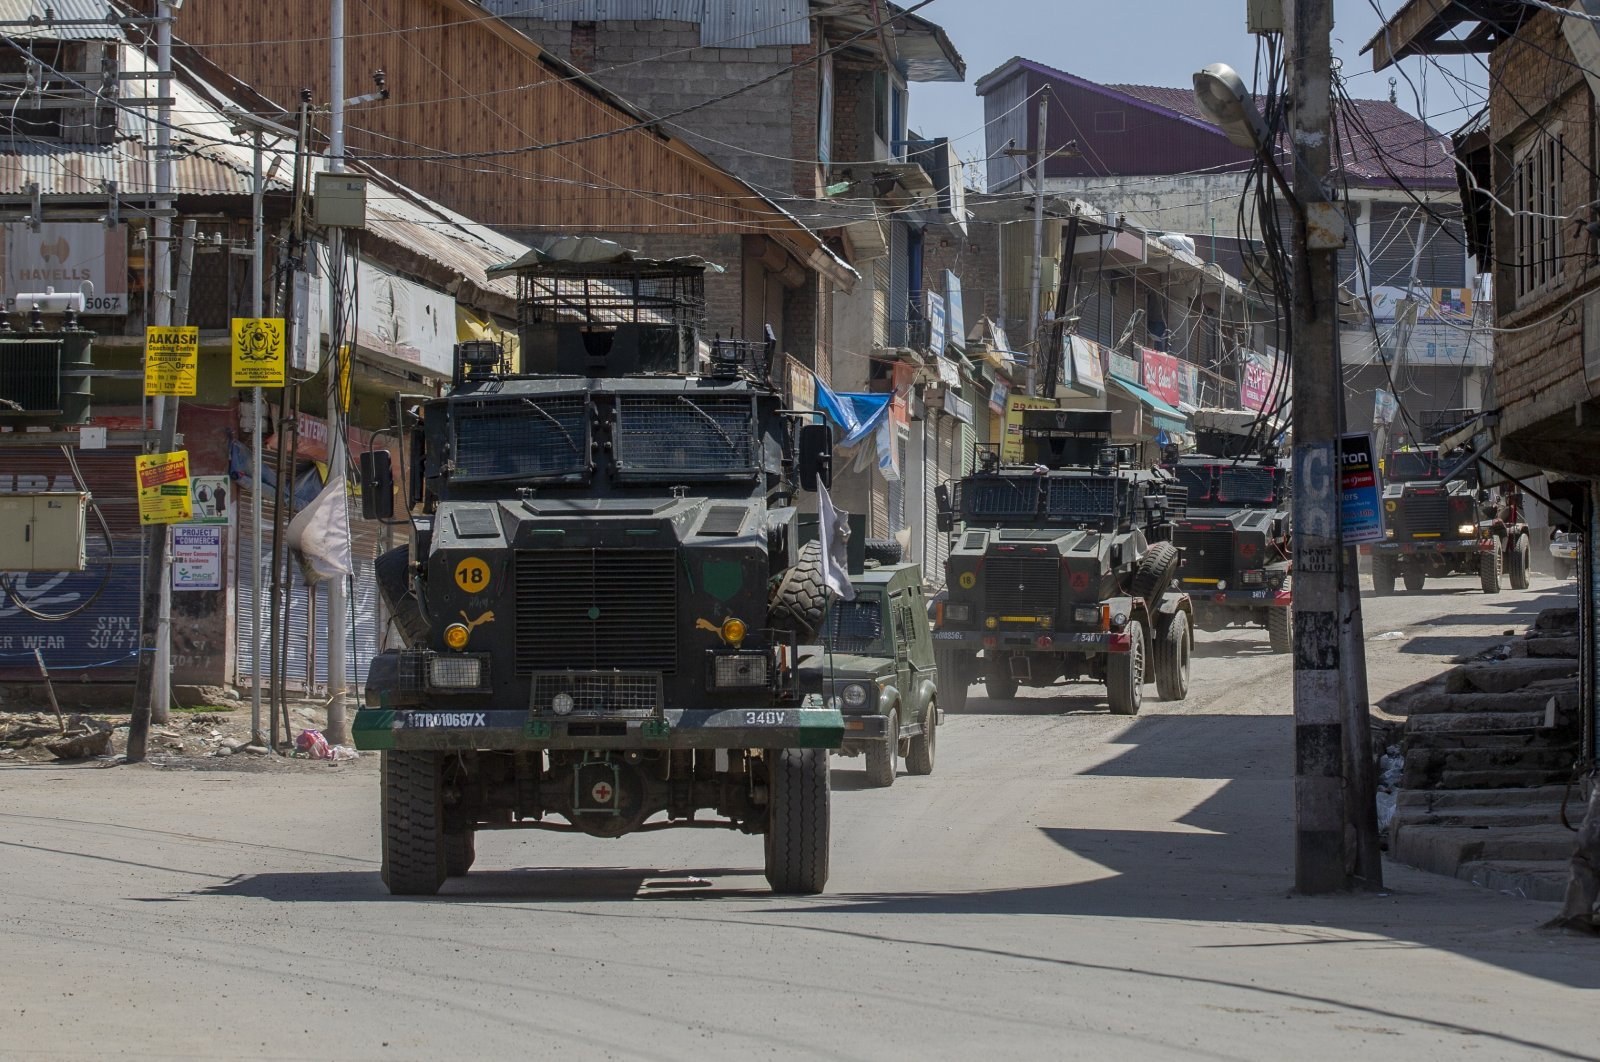 Indian Army vehicles leave after a gun battle in Shopian, south of Srinagar, Indian-controlled Jammu and Kashmir, April 9, 2021. (AFP Photo)